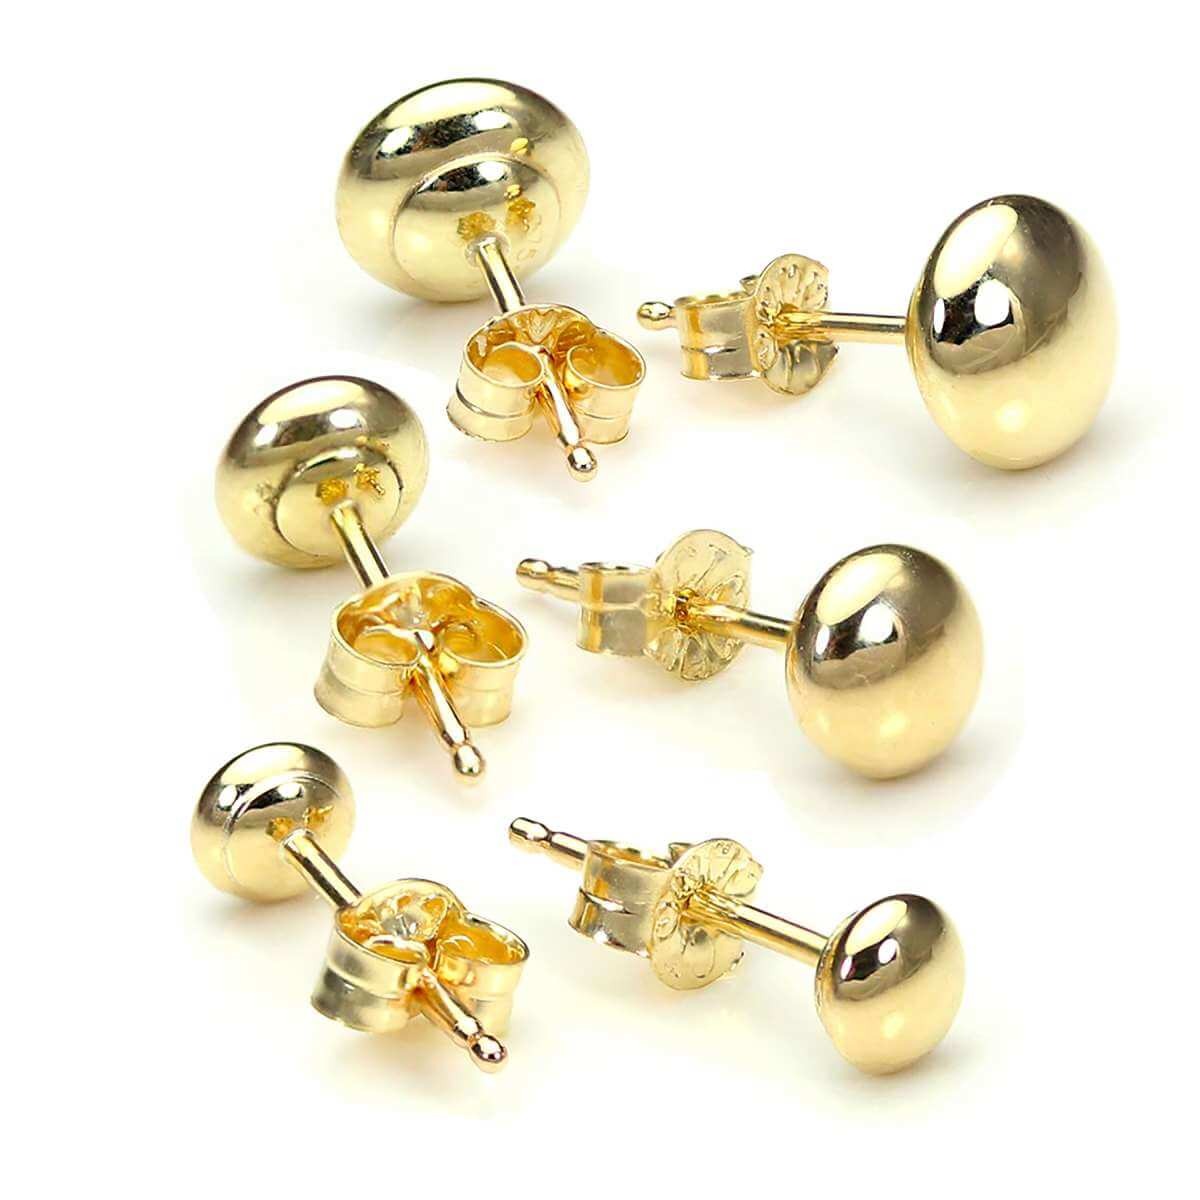 Triple 9ct Gold Bouton 3 4 & 5mm Ball Stud Earrings Set